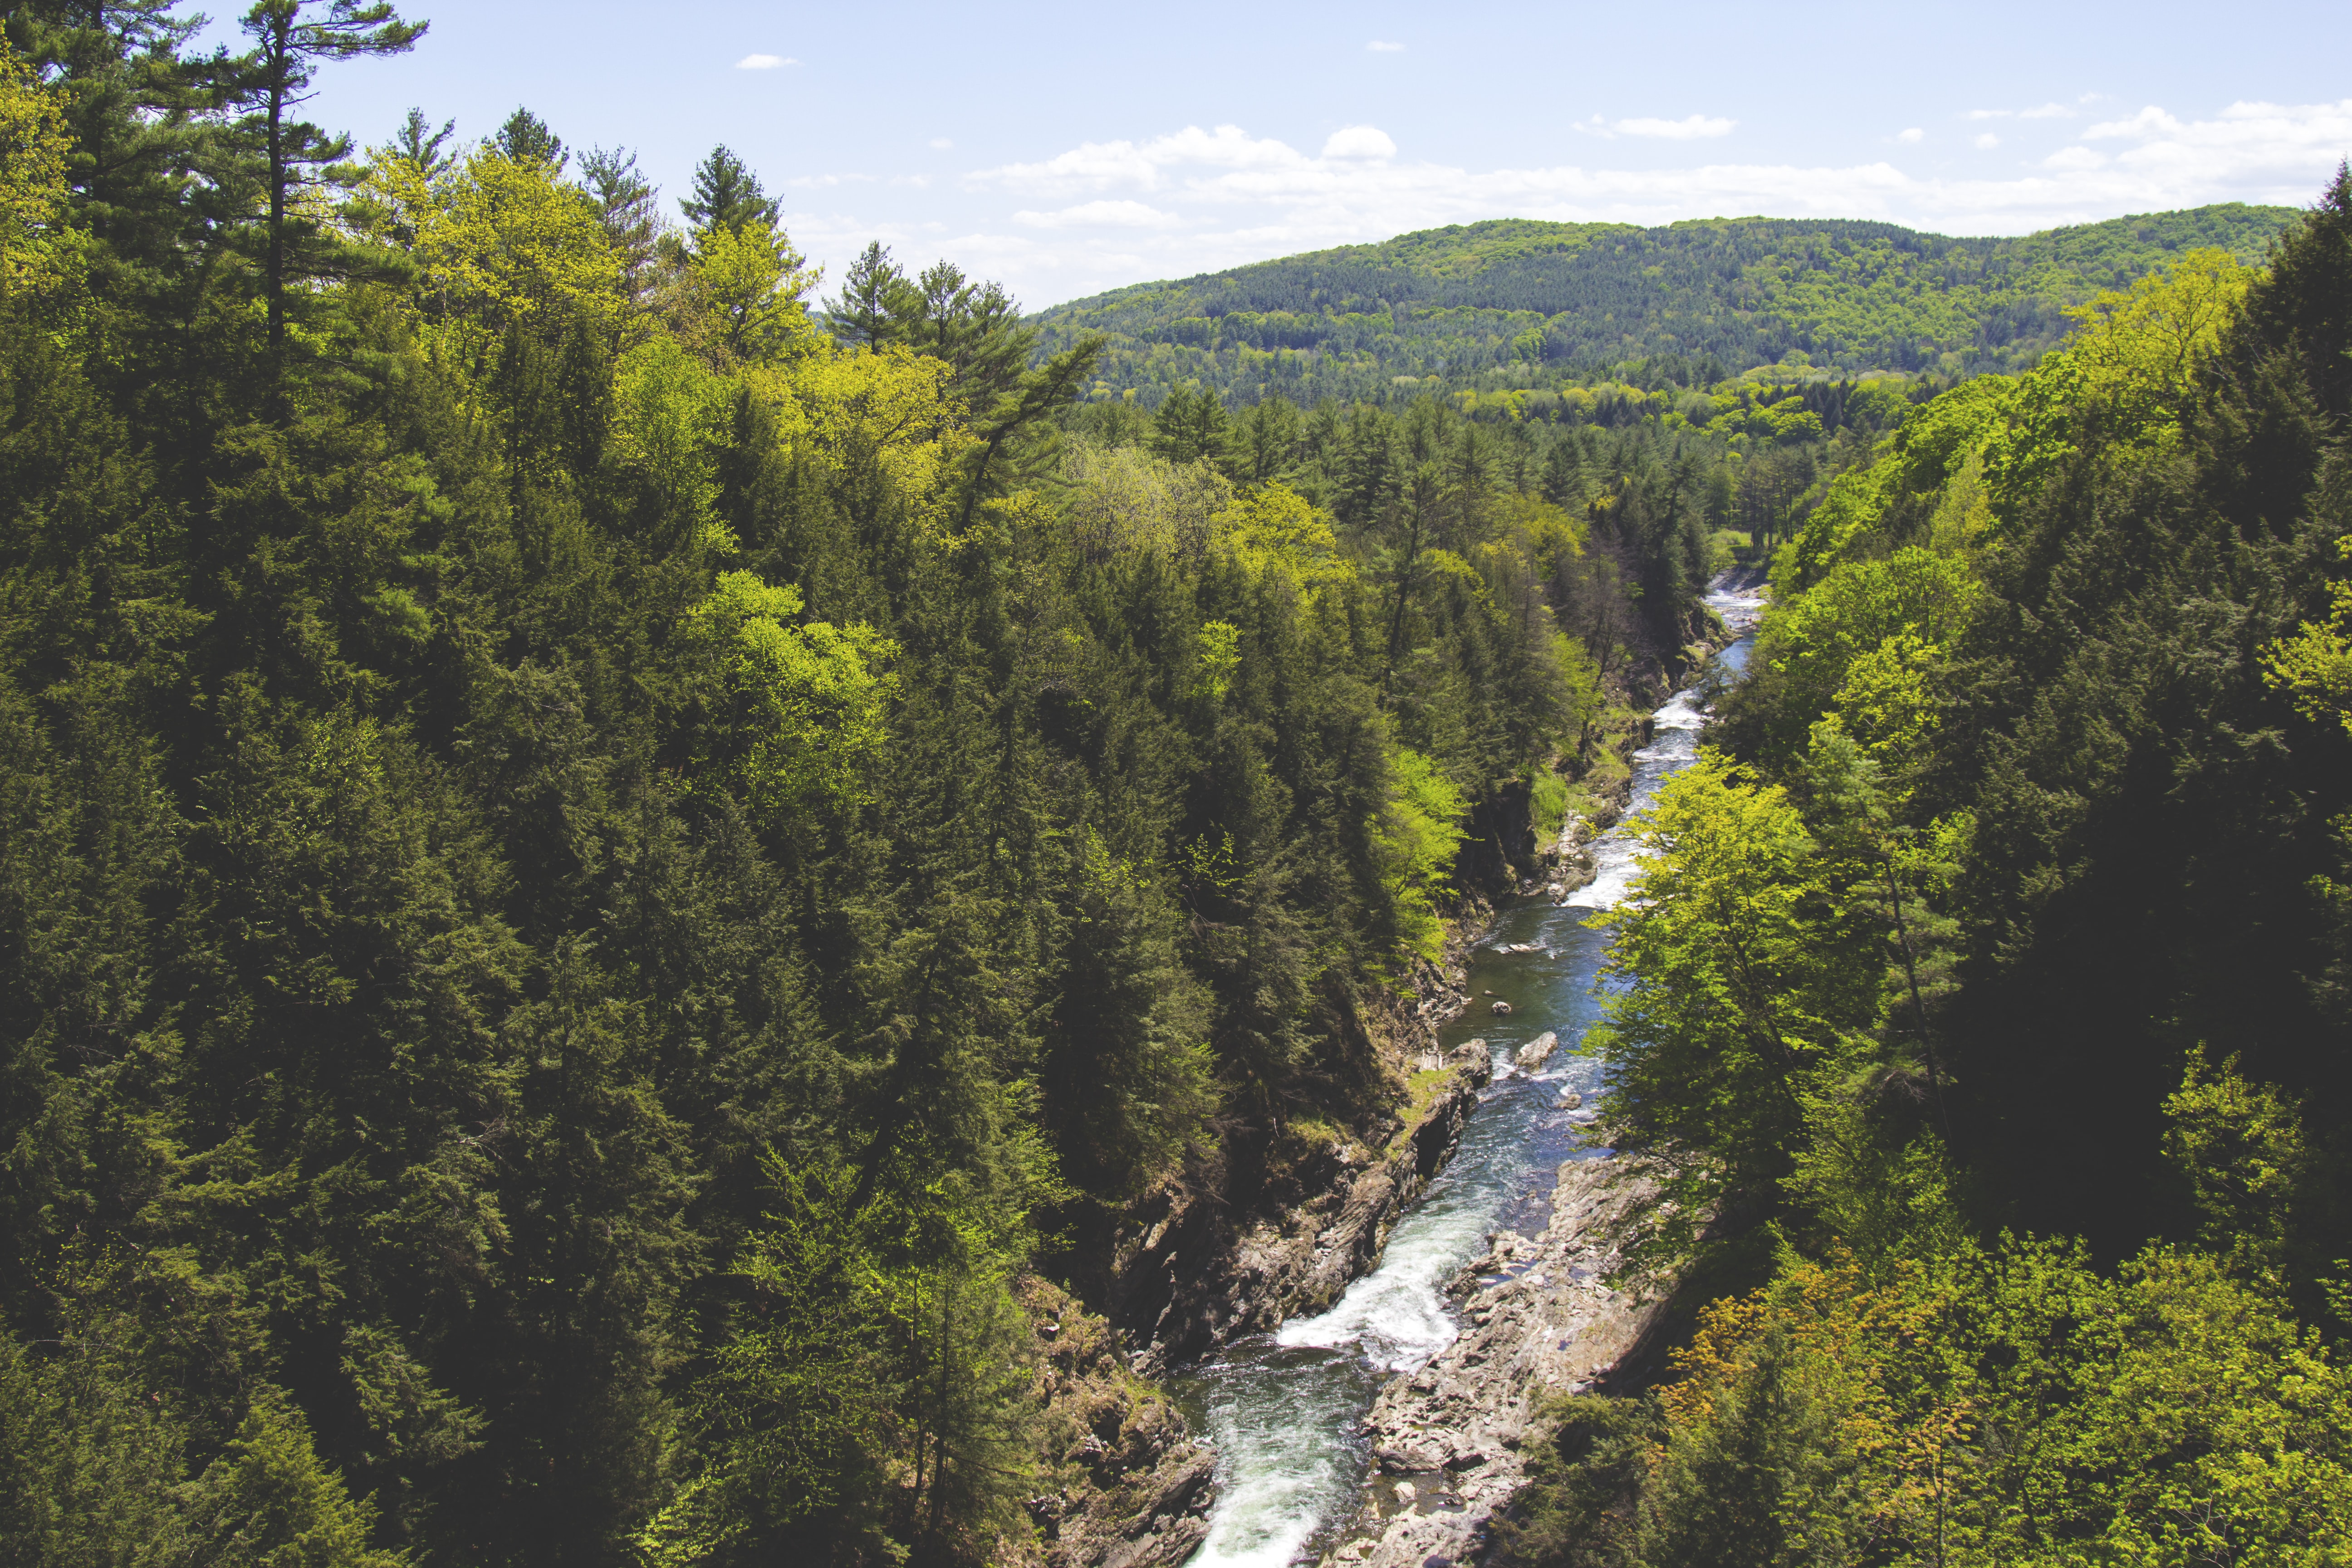 aerial photography of flowing river in between pine trees overlooking green mountain under blue sky at daytime